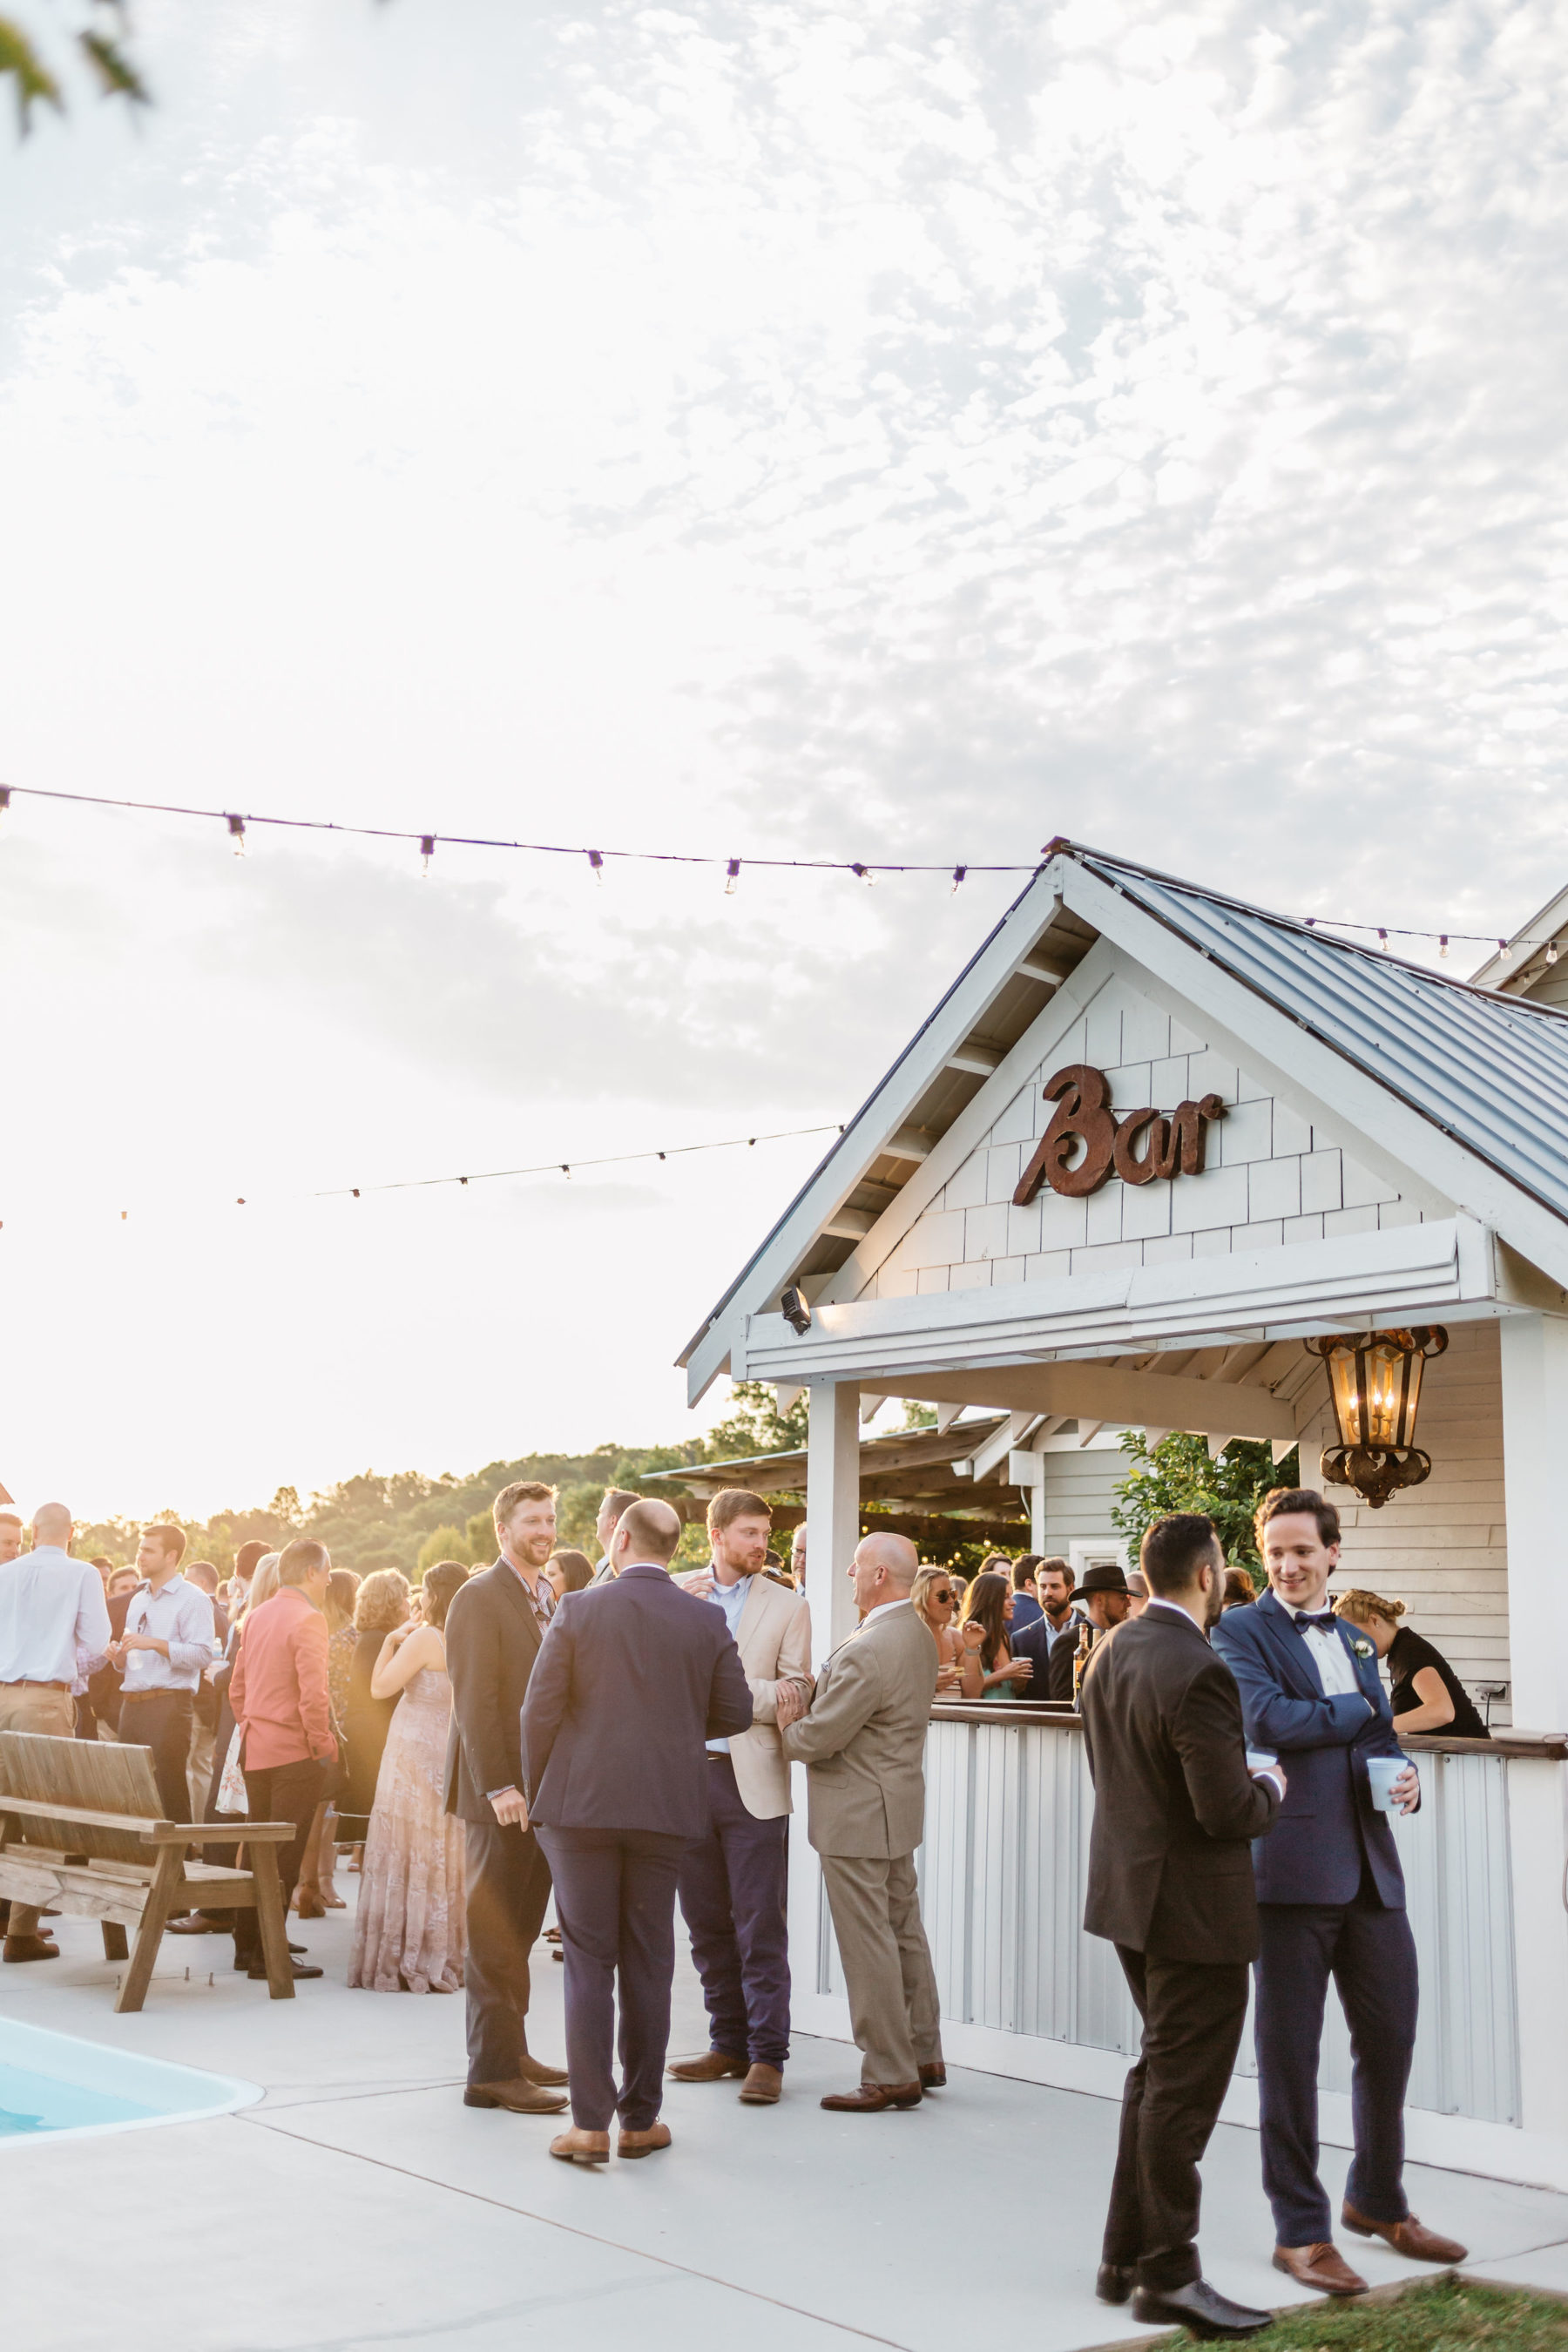 Rustic Front Porch Farms wedding featured on Nashville Bride Guide